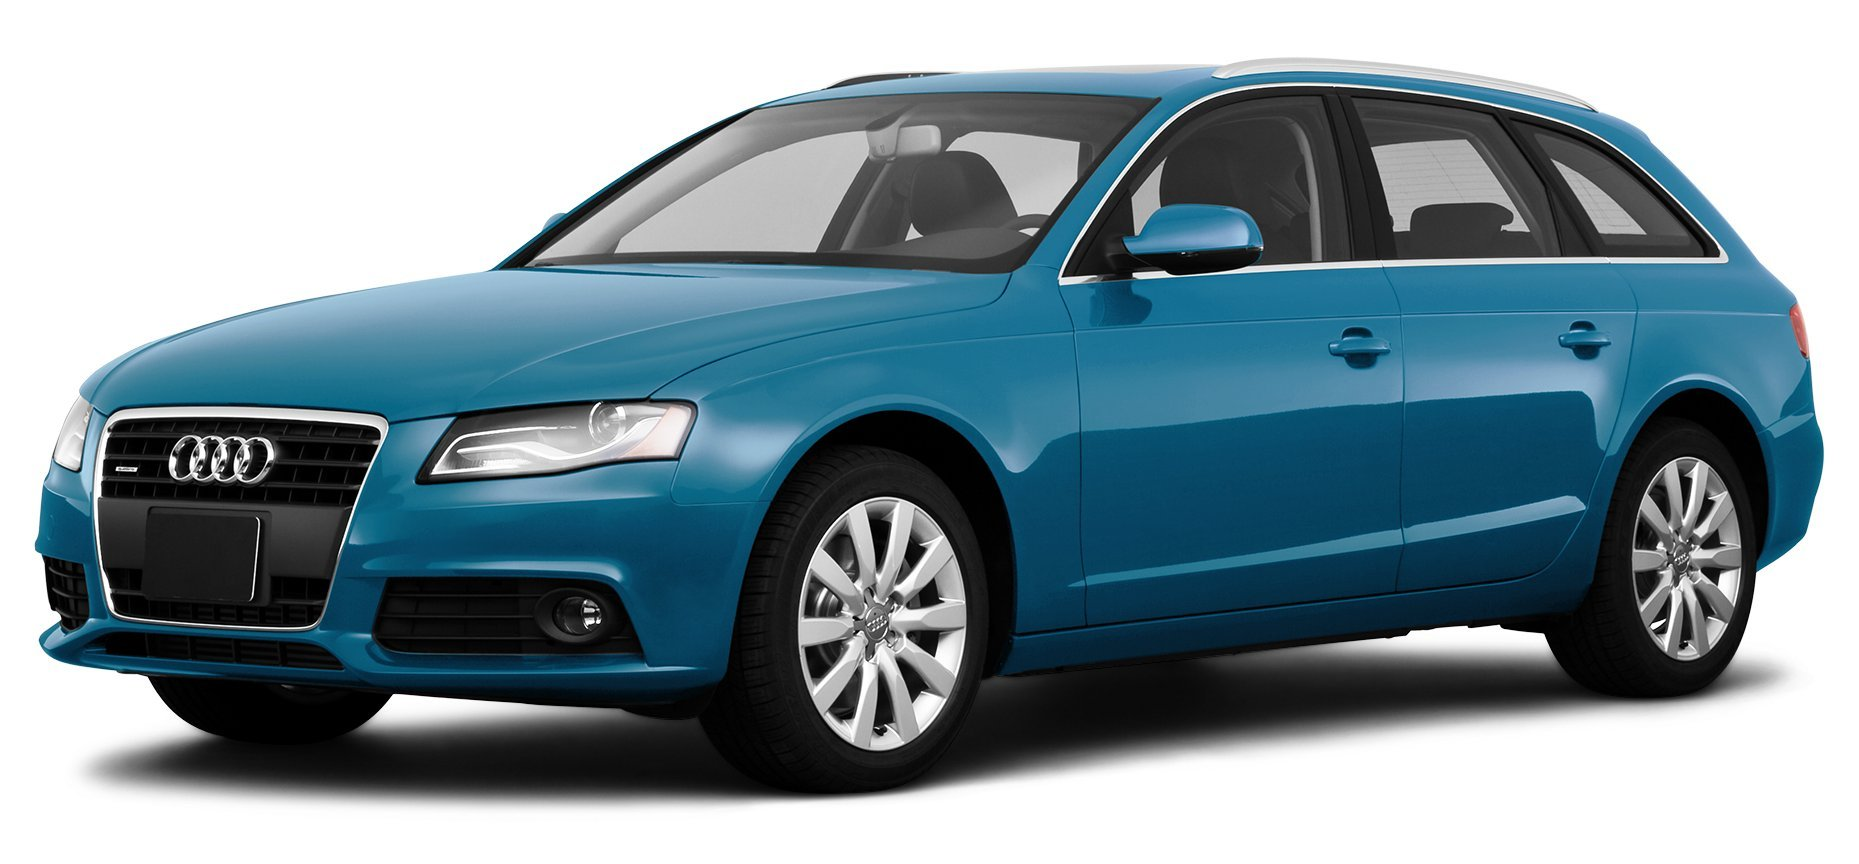 2010 audi a4 quattro reviews images and. Black Bedroom Furniture Sets. Home Design Ideas